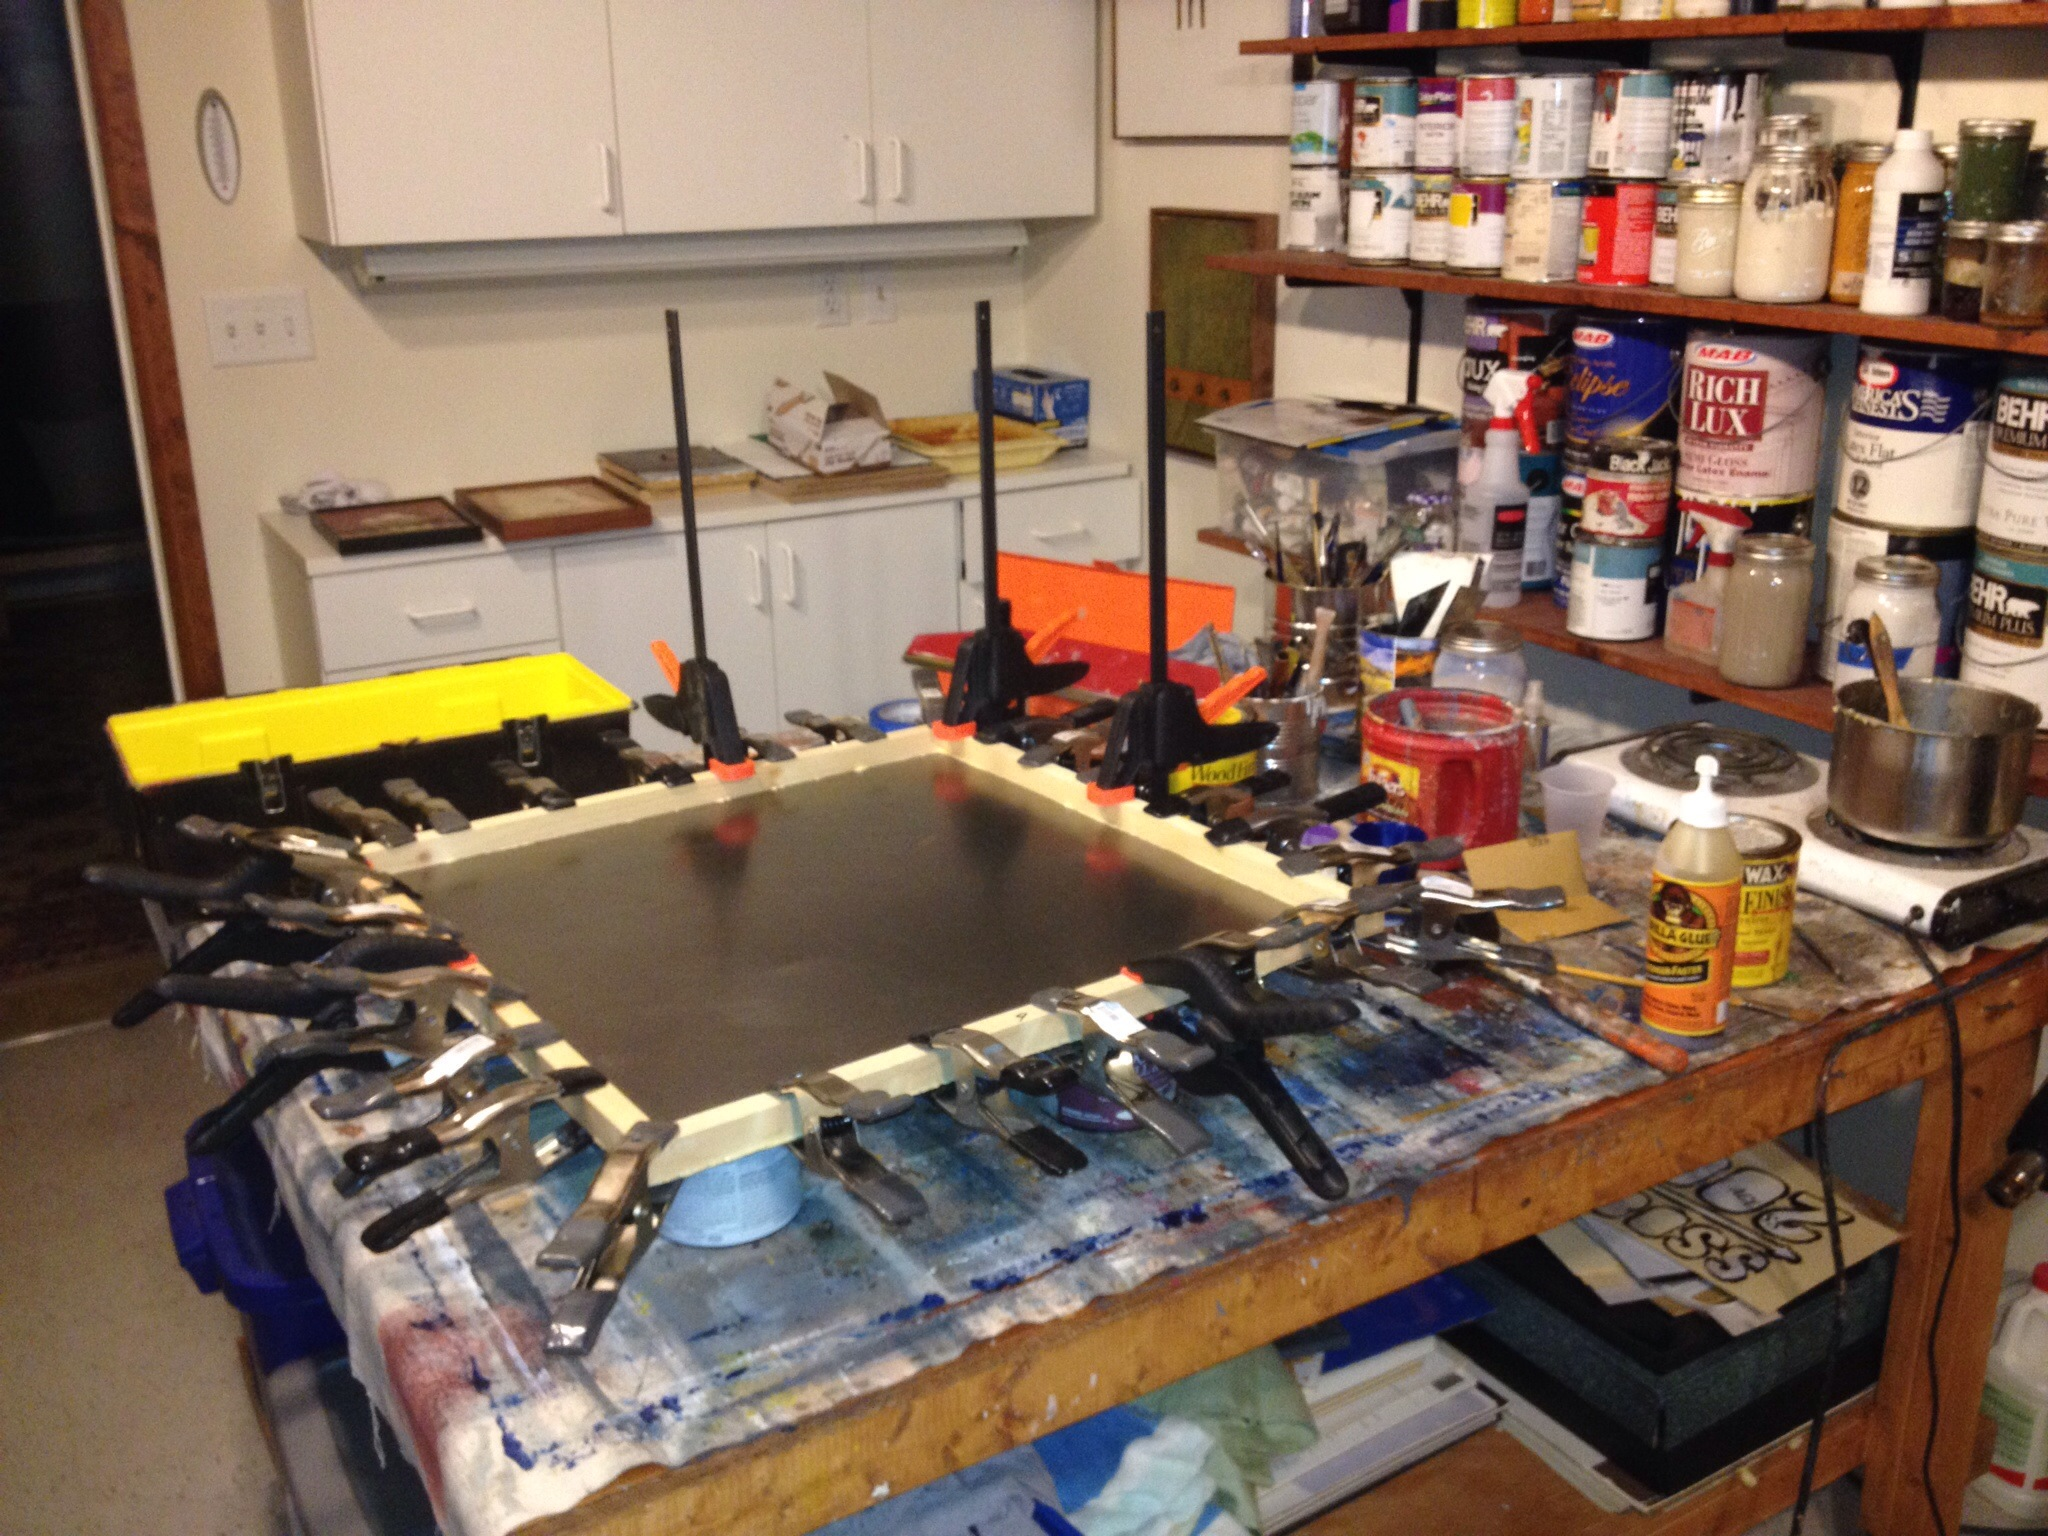 Art studio workbench mess